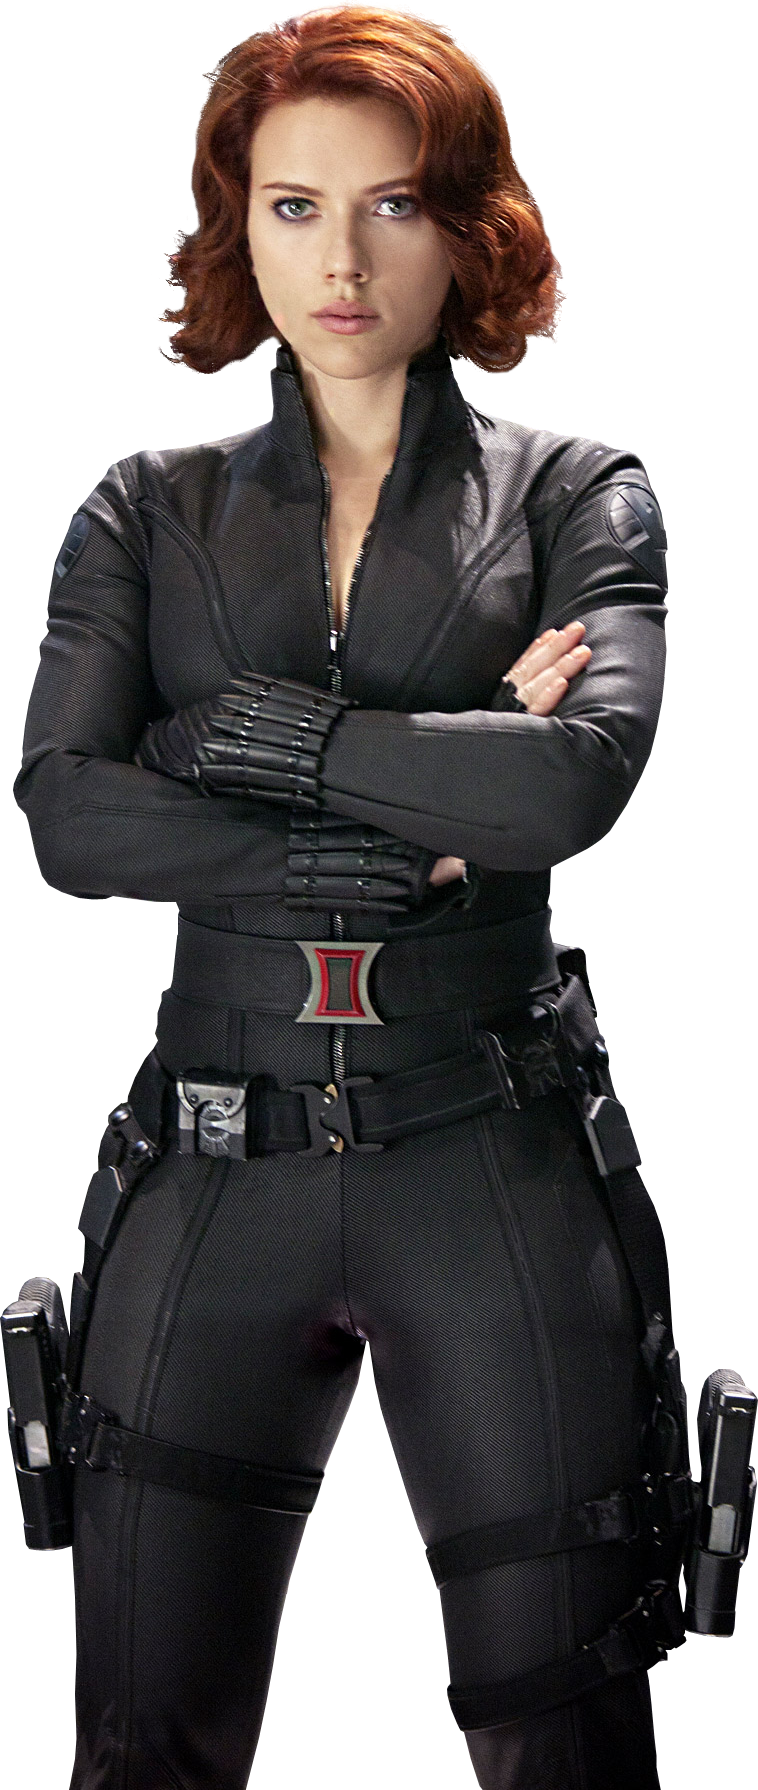 PNG File Name: Black Widow PlusPng.com  - Black Widow PNG